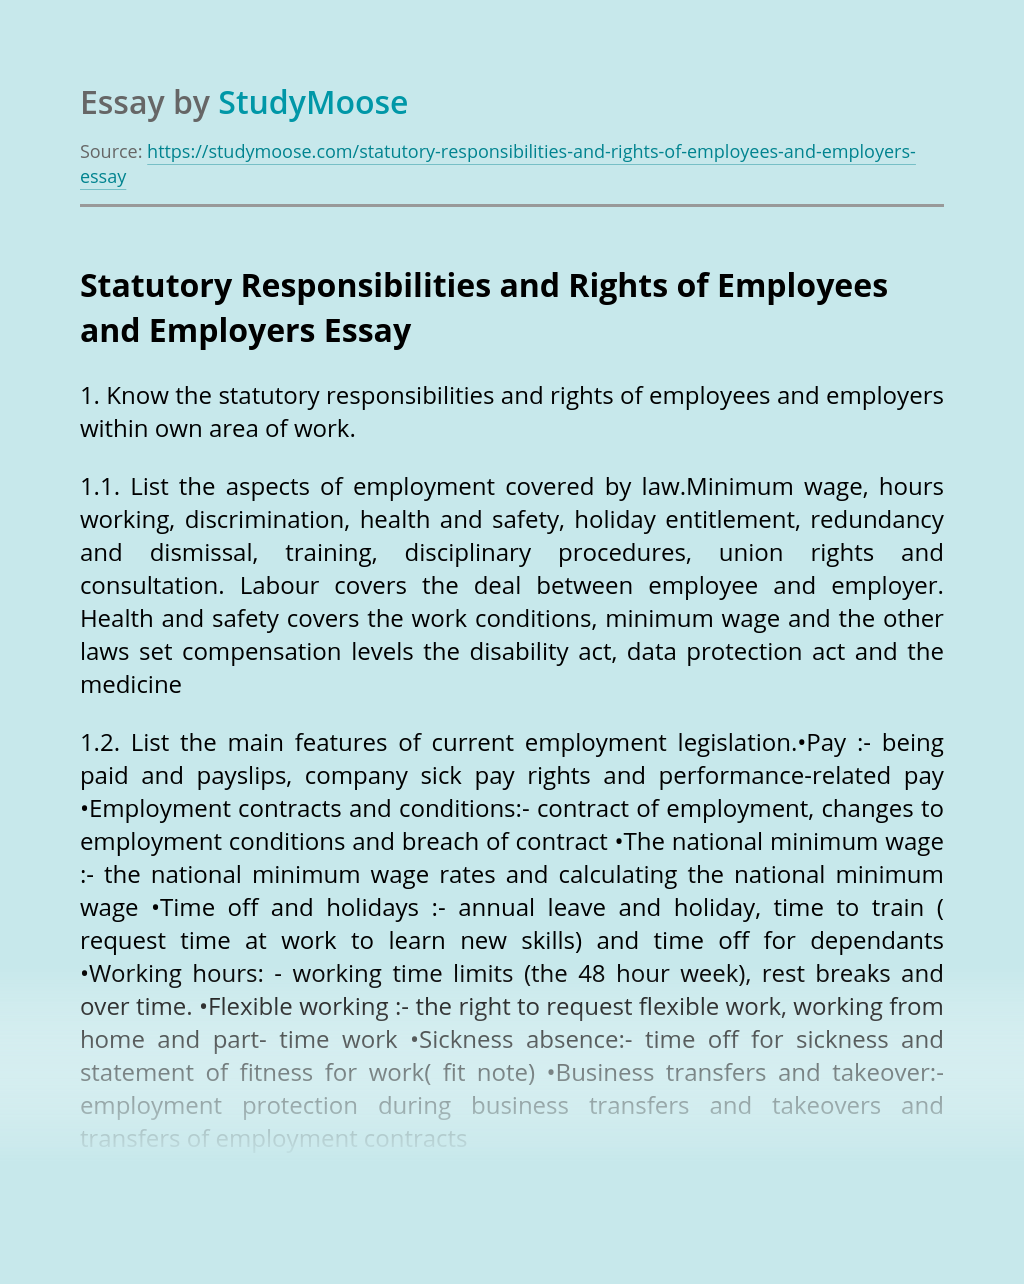 Statutory Responsibilities and Rights of Employees and Employers